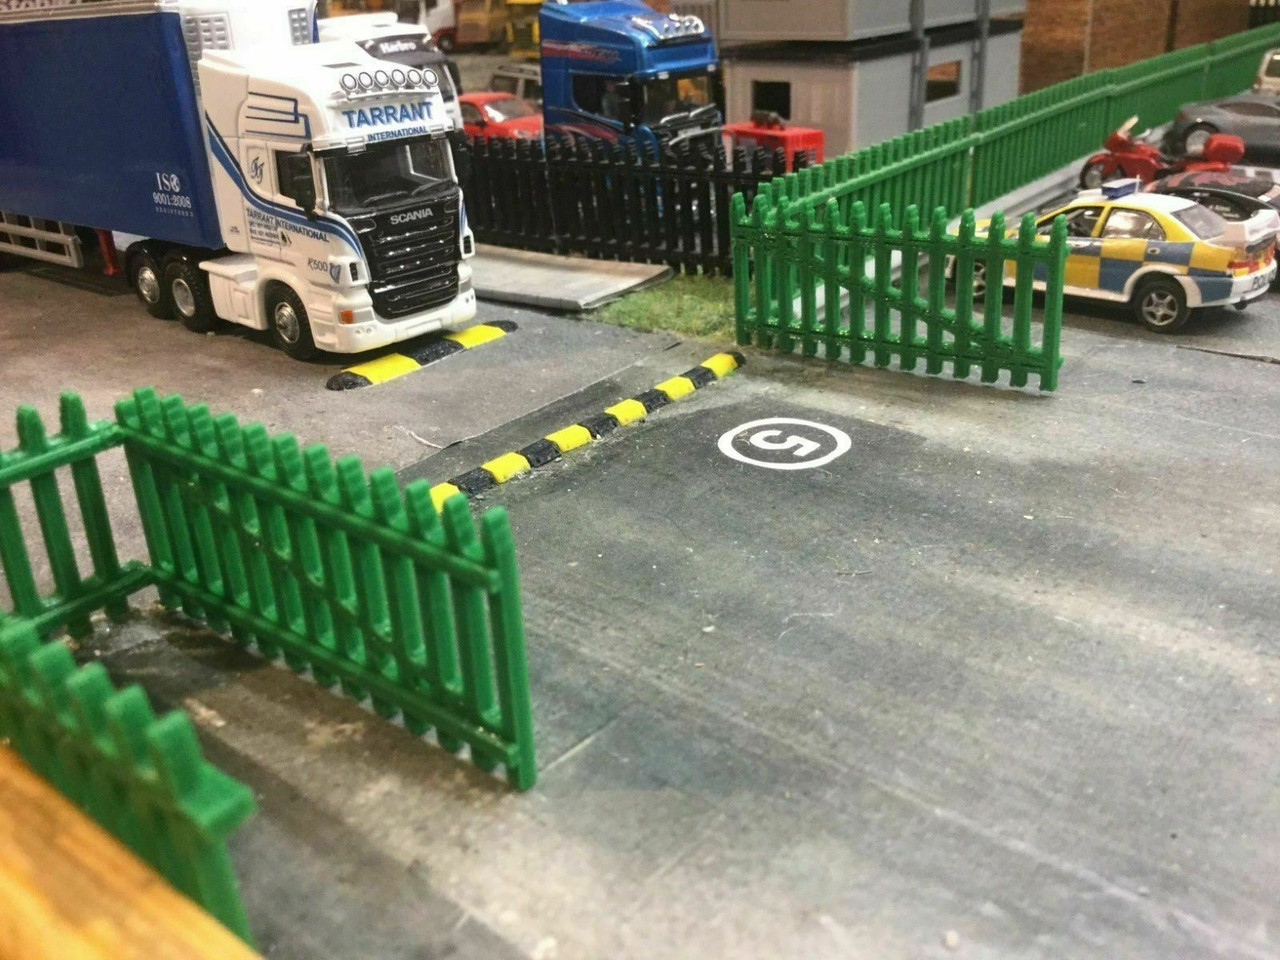 1:76 and 00 gauge 3D printed security fence (green)